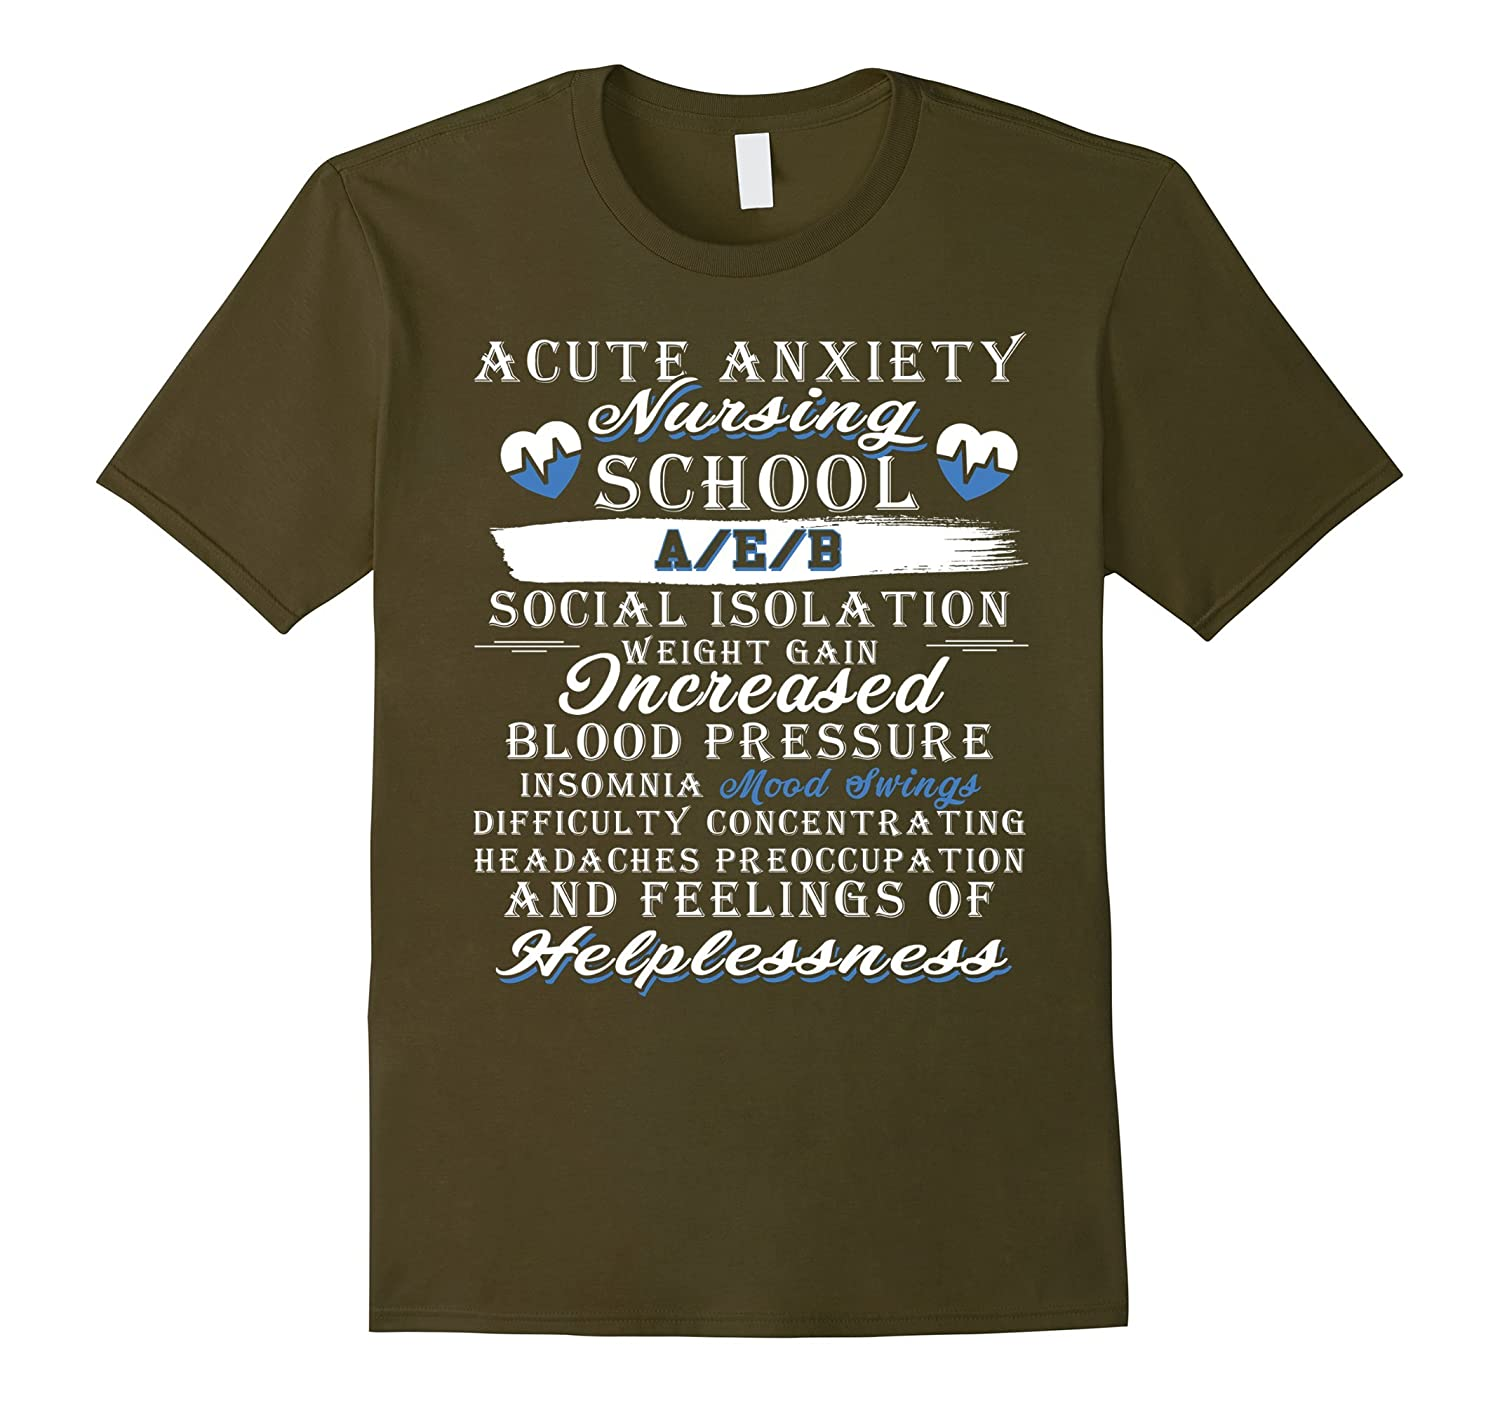 A Cute Anxiety Nursing School T Shirt My Job T Shirt-TJ